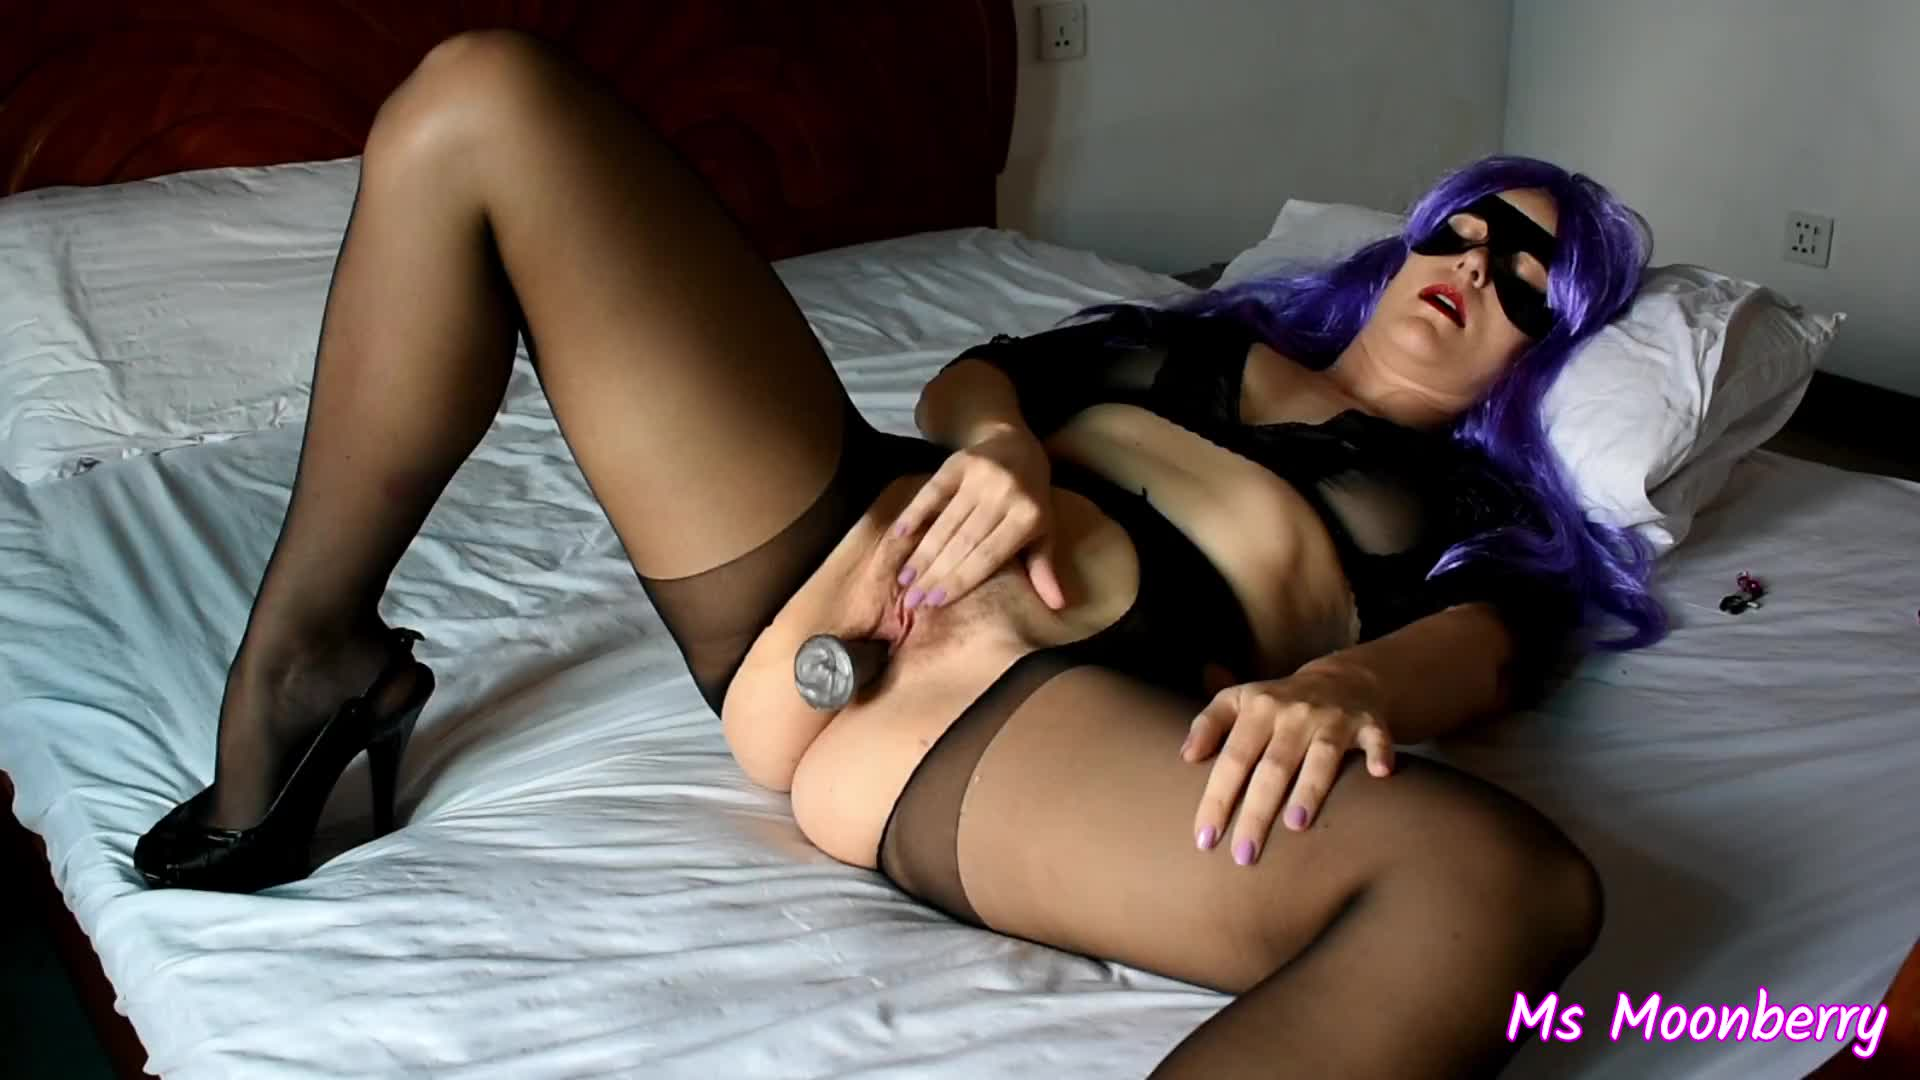 Masturbating in pantyhose - multiple orgasms  (video in comment)